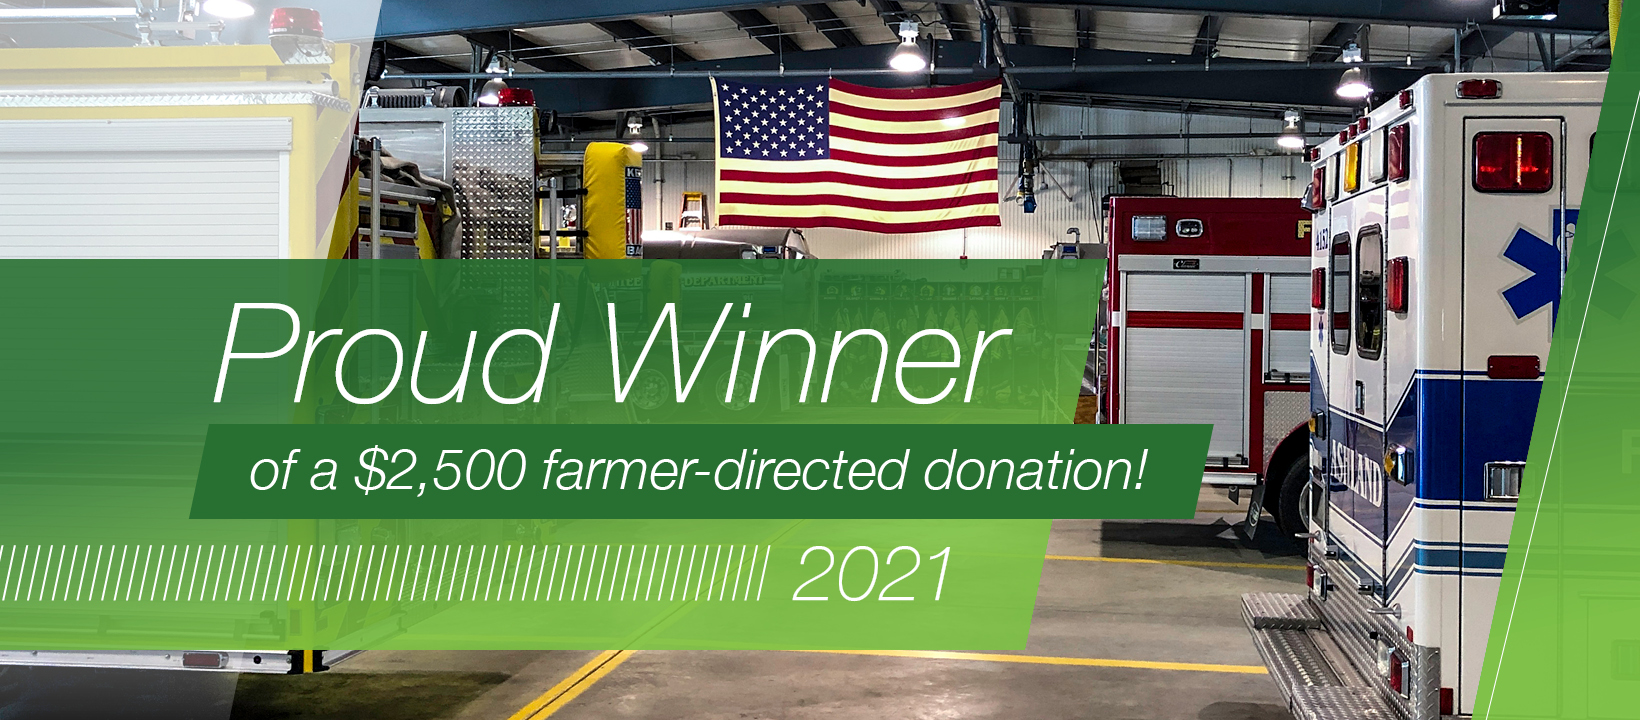 Thank you Larry and Kathy Feikert for the America's Farmers Grant Donation to Bucklin Schools. It is very much appreciated. It will be used to purchase a much needed PA/Speaker system for the baseball/softball/football fields.